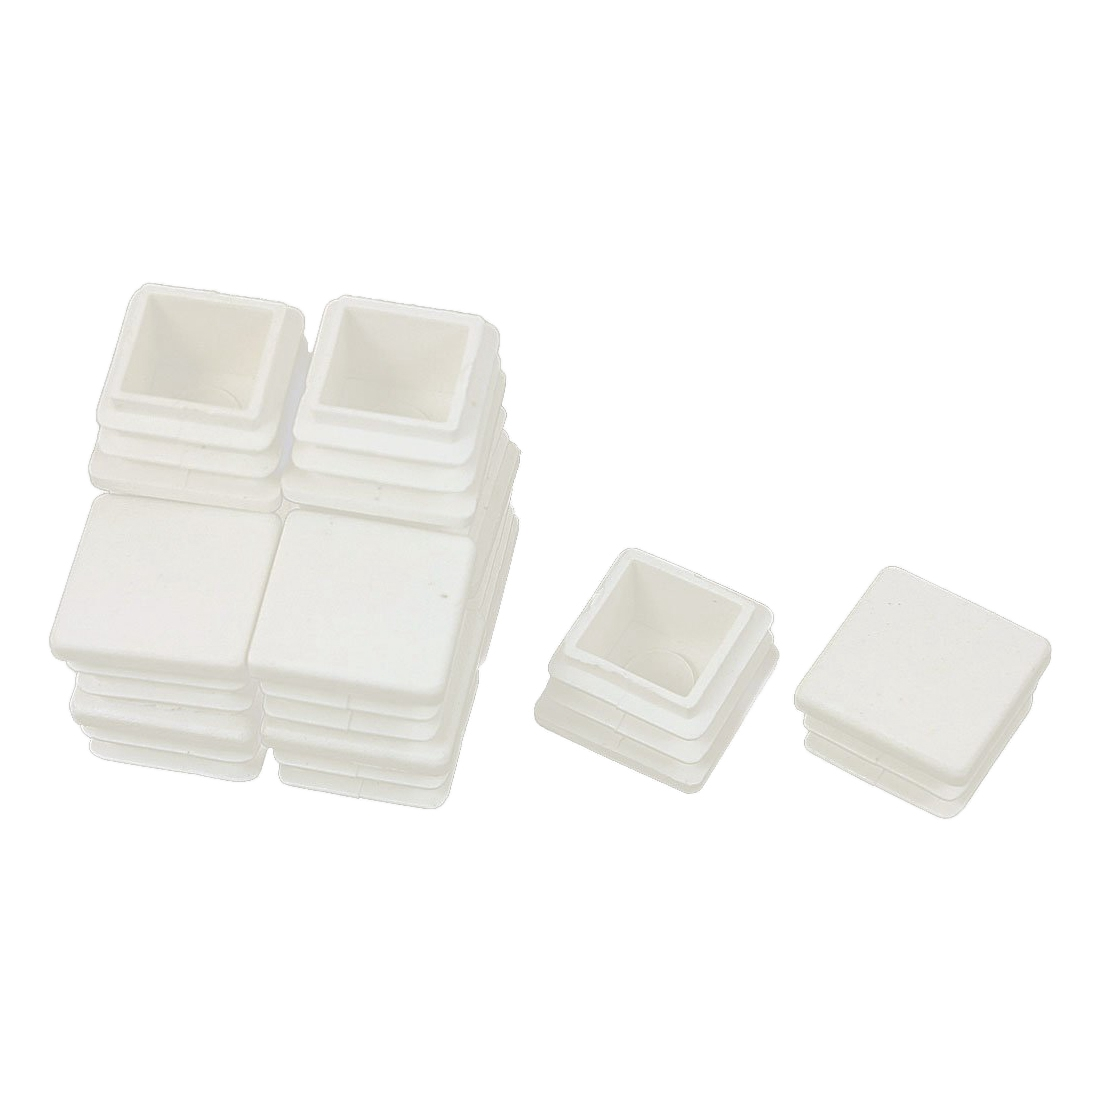 Hot Sale 20 Mm X 20 Mm Plastic White End Caps Blanking Version Of The Caps Spare Caps Accessories For Professional Square Tube